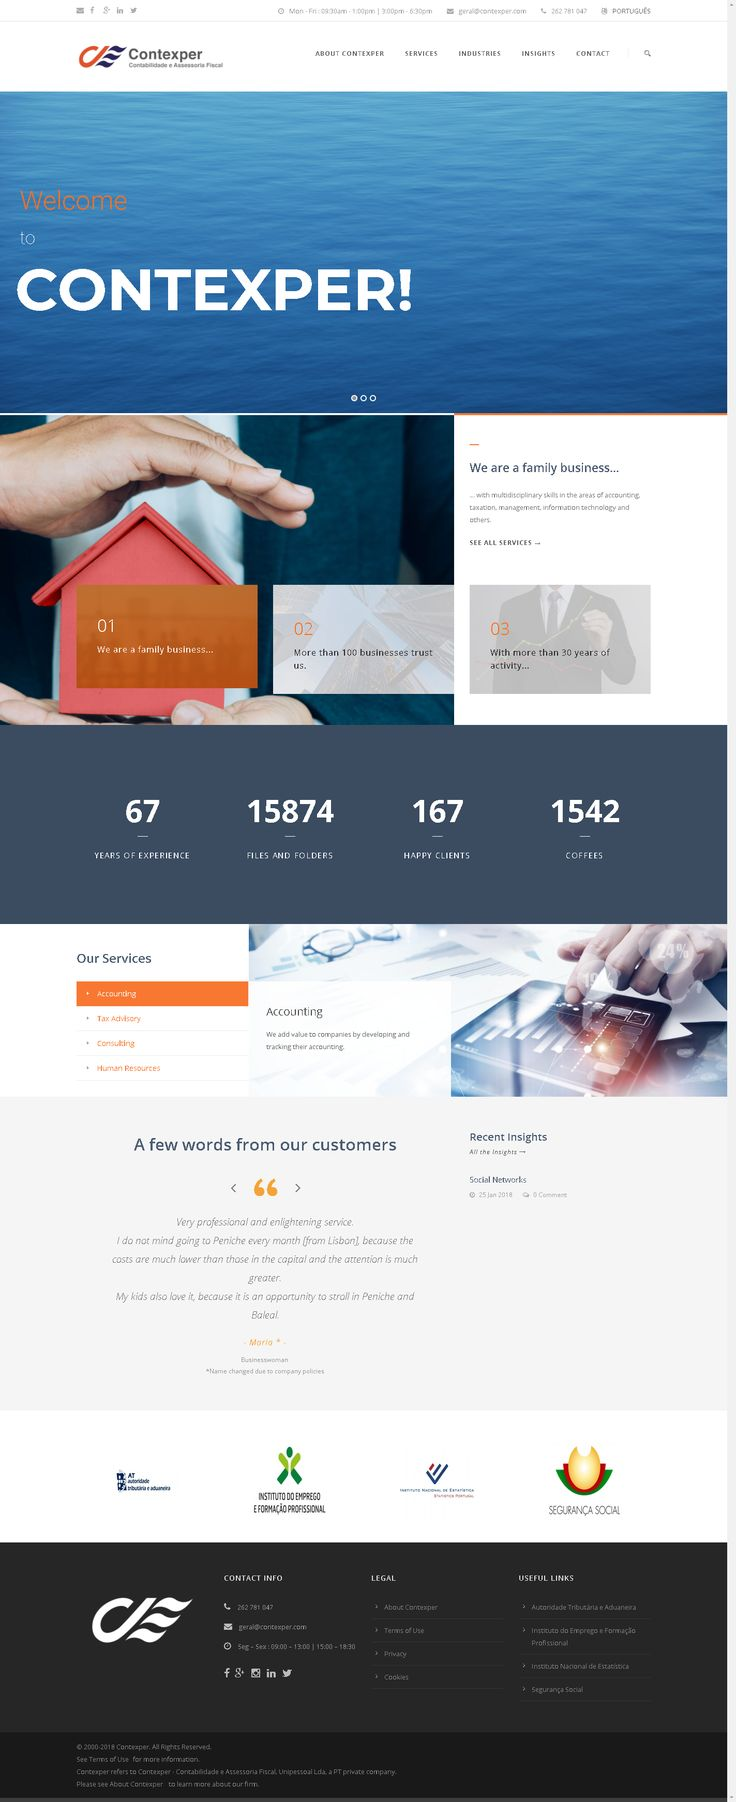 One of the most robust websites that I have seen lately. Just wow. // http://en.contexper.pt // #business #consulting #accounting #taxes #finances #design #webdesign #website #contexper #peniche #portugal